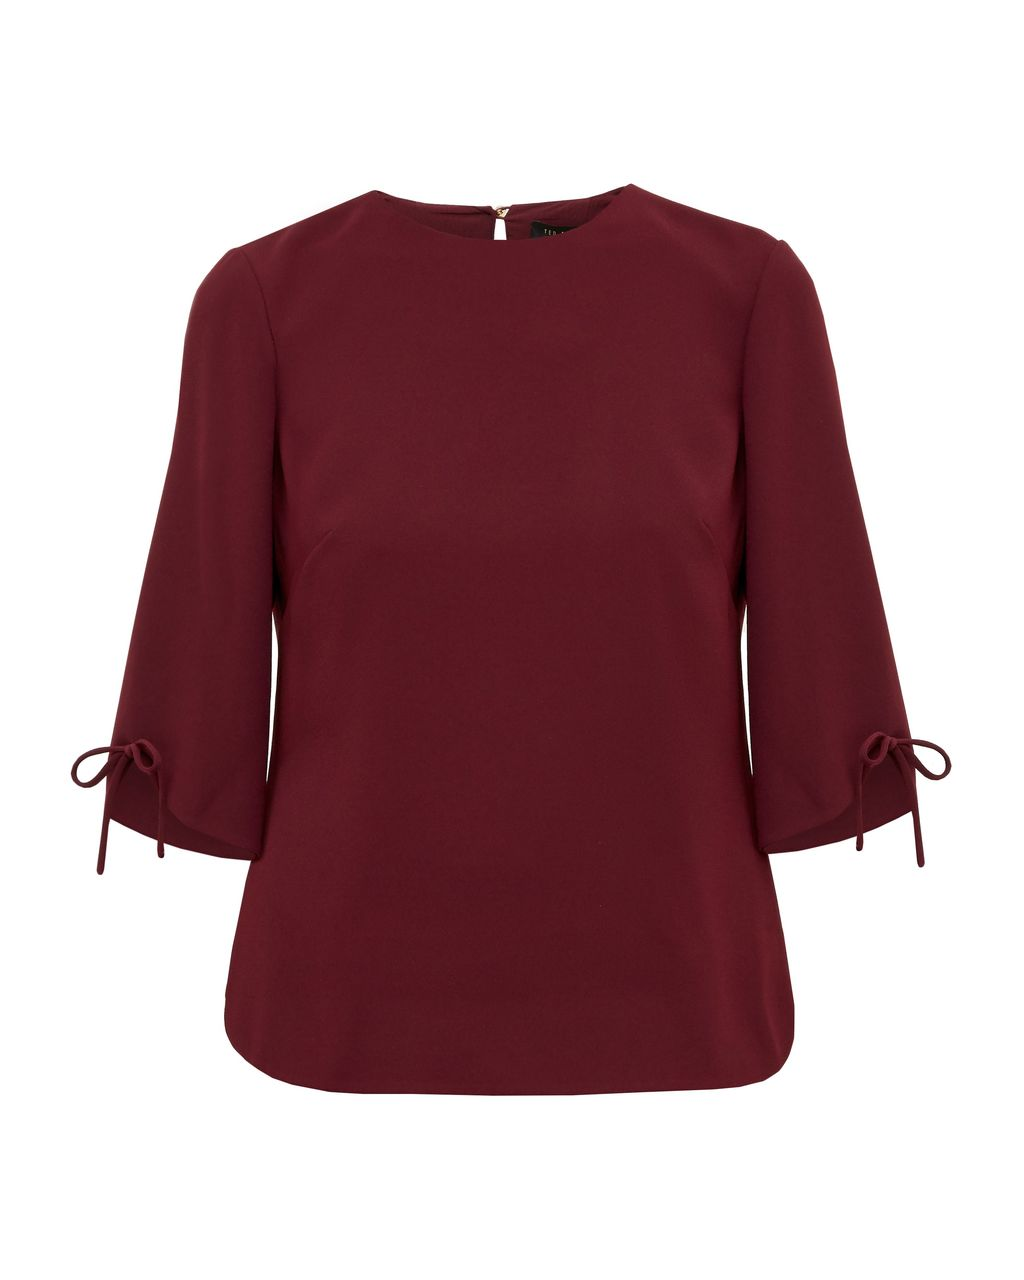 Hattsy Bow Detailed Top, Red - pattern: plain; predominant colour: burgundy; occasions: casual; length: standard; style: top; fibres: polyester/polyamide - 100%; fit: body skimming; neckline: crew; sleeve length: 3/4 length; sleeve style: standard; pattern type: fabric; texture group: other - light to midweight; season: s/s 2016; wardrobe: highlight